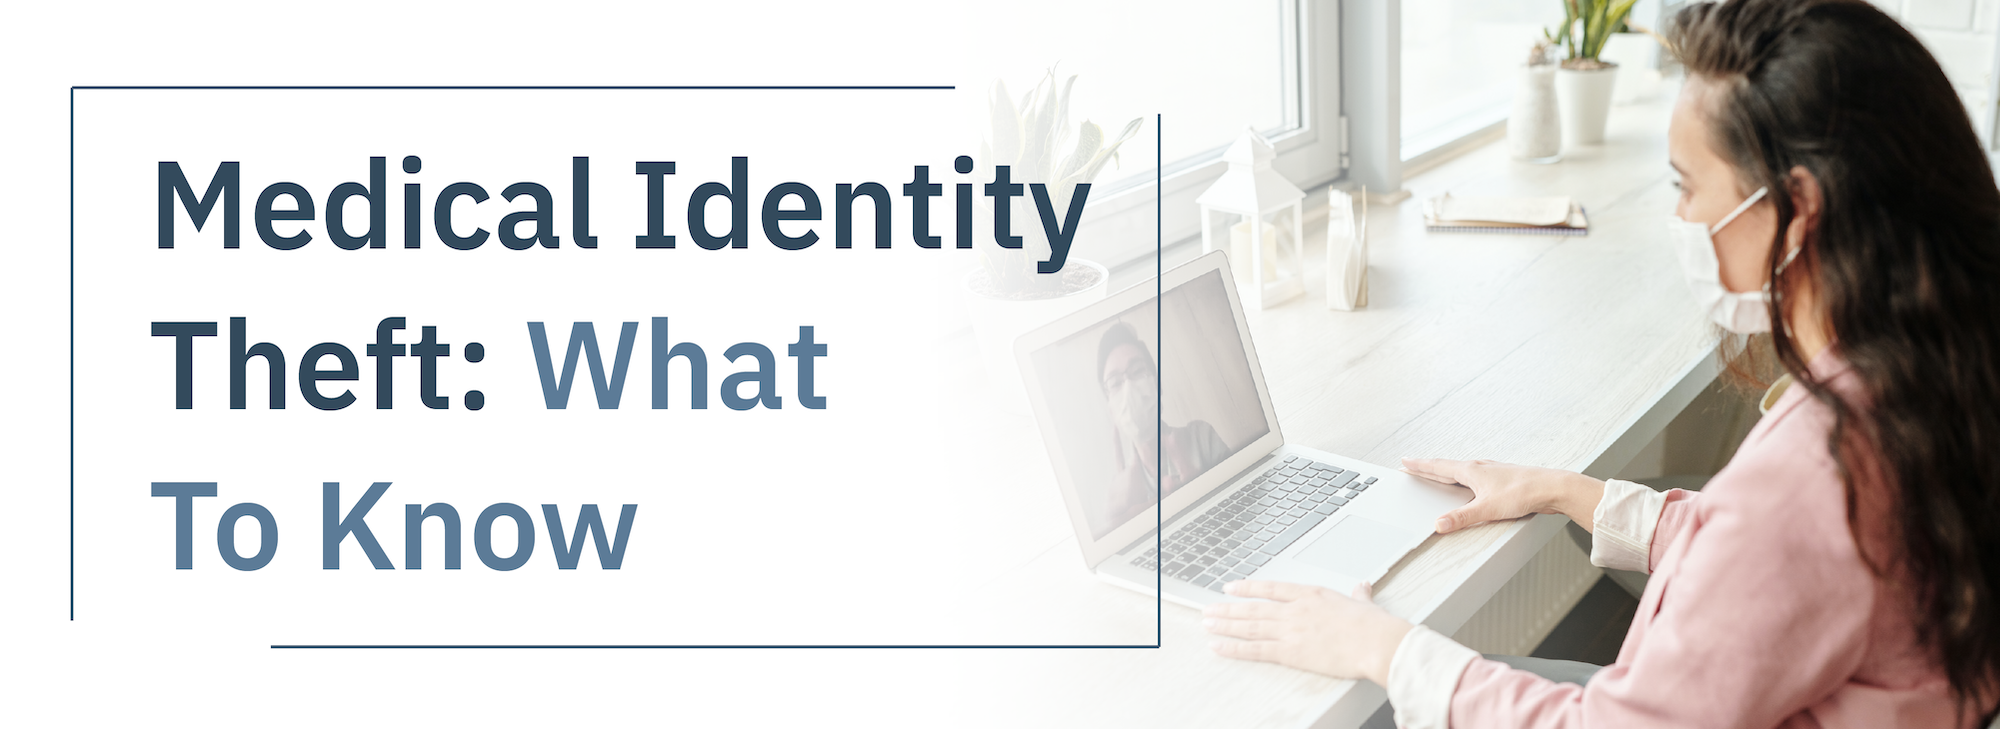 Medical Identity Theft: What to Know